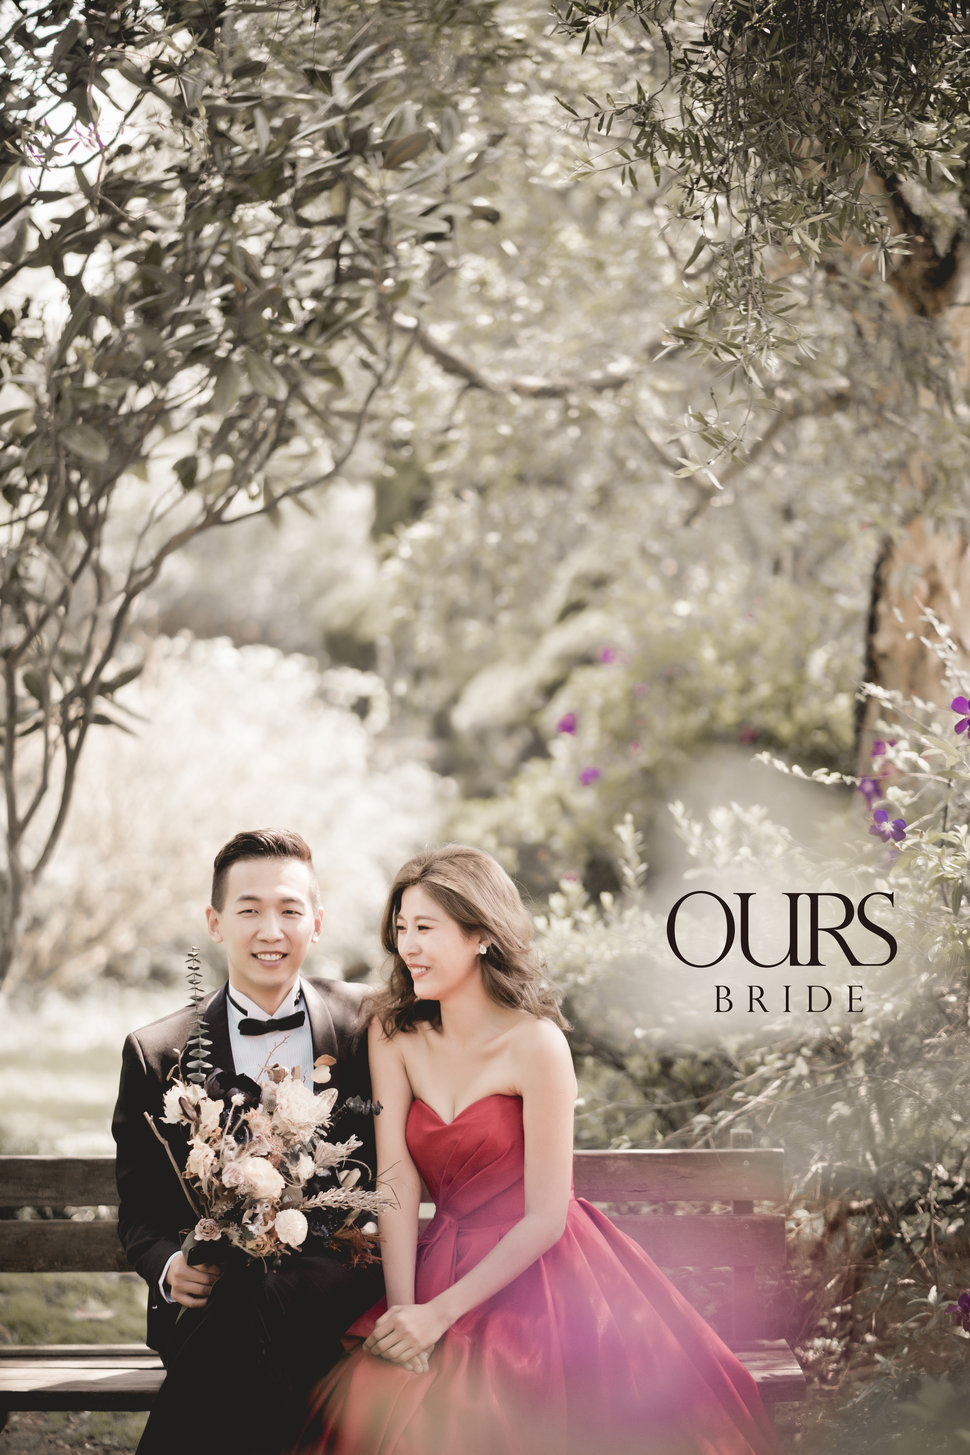 190312st-0155 - OURS BRIDE《結婚吧》